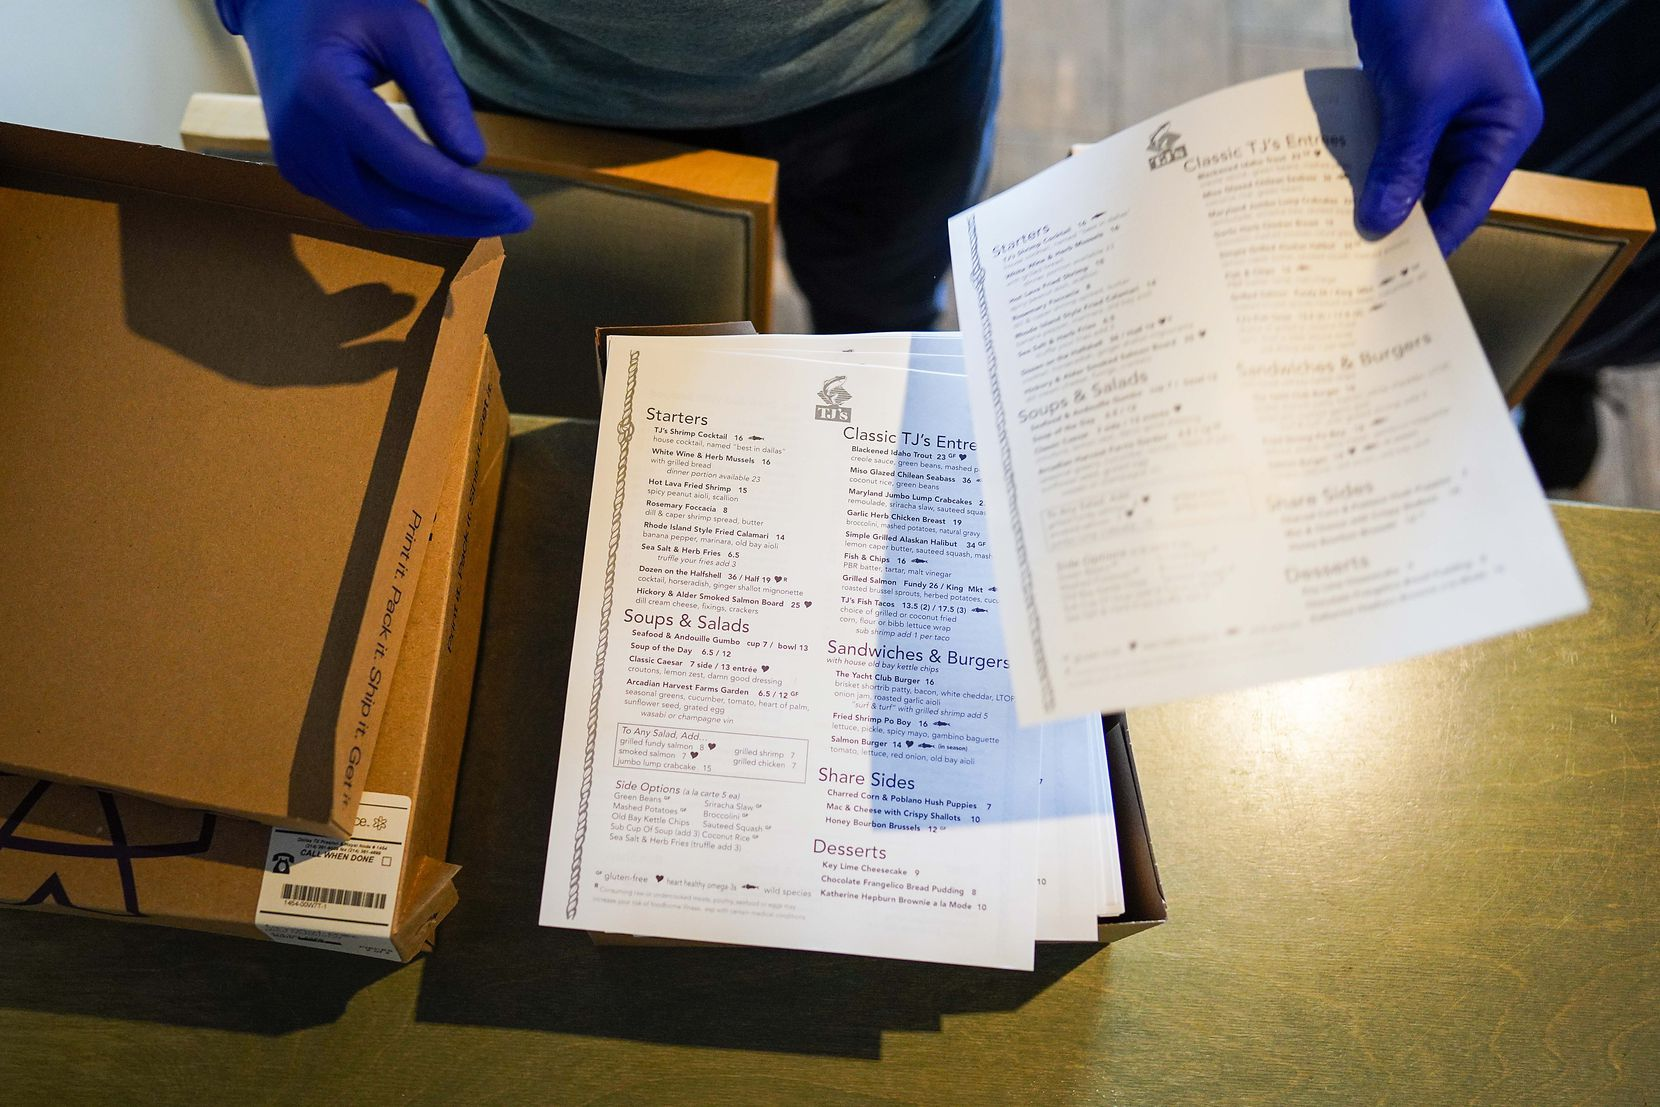 Bar manager Brett Martin unboxes new disposable menus at TJ's Seafood restaurant on Tuesday in Dallas. The restaurant has partnered with a testing company to test all of their employees for COVID-19, screen and train them. (Smiley N. Pool/The Dallas Morning News)